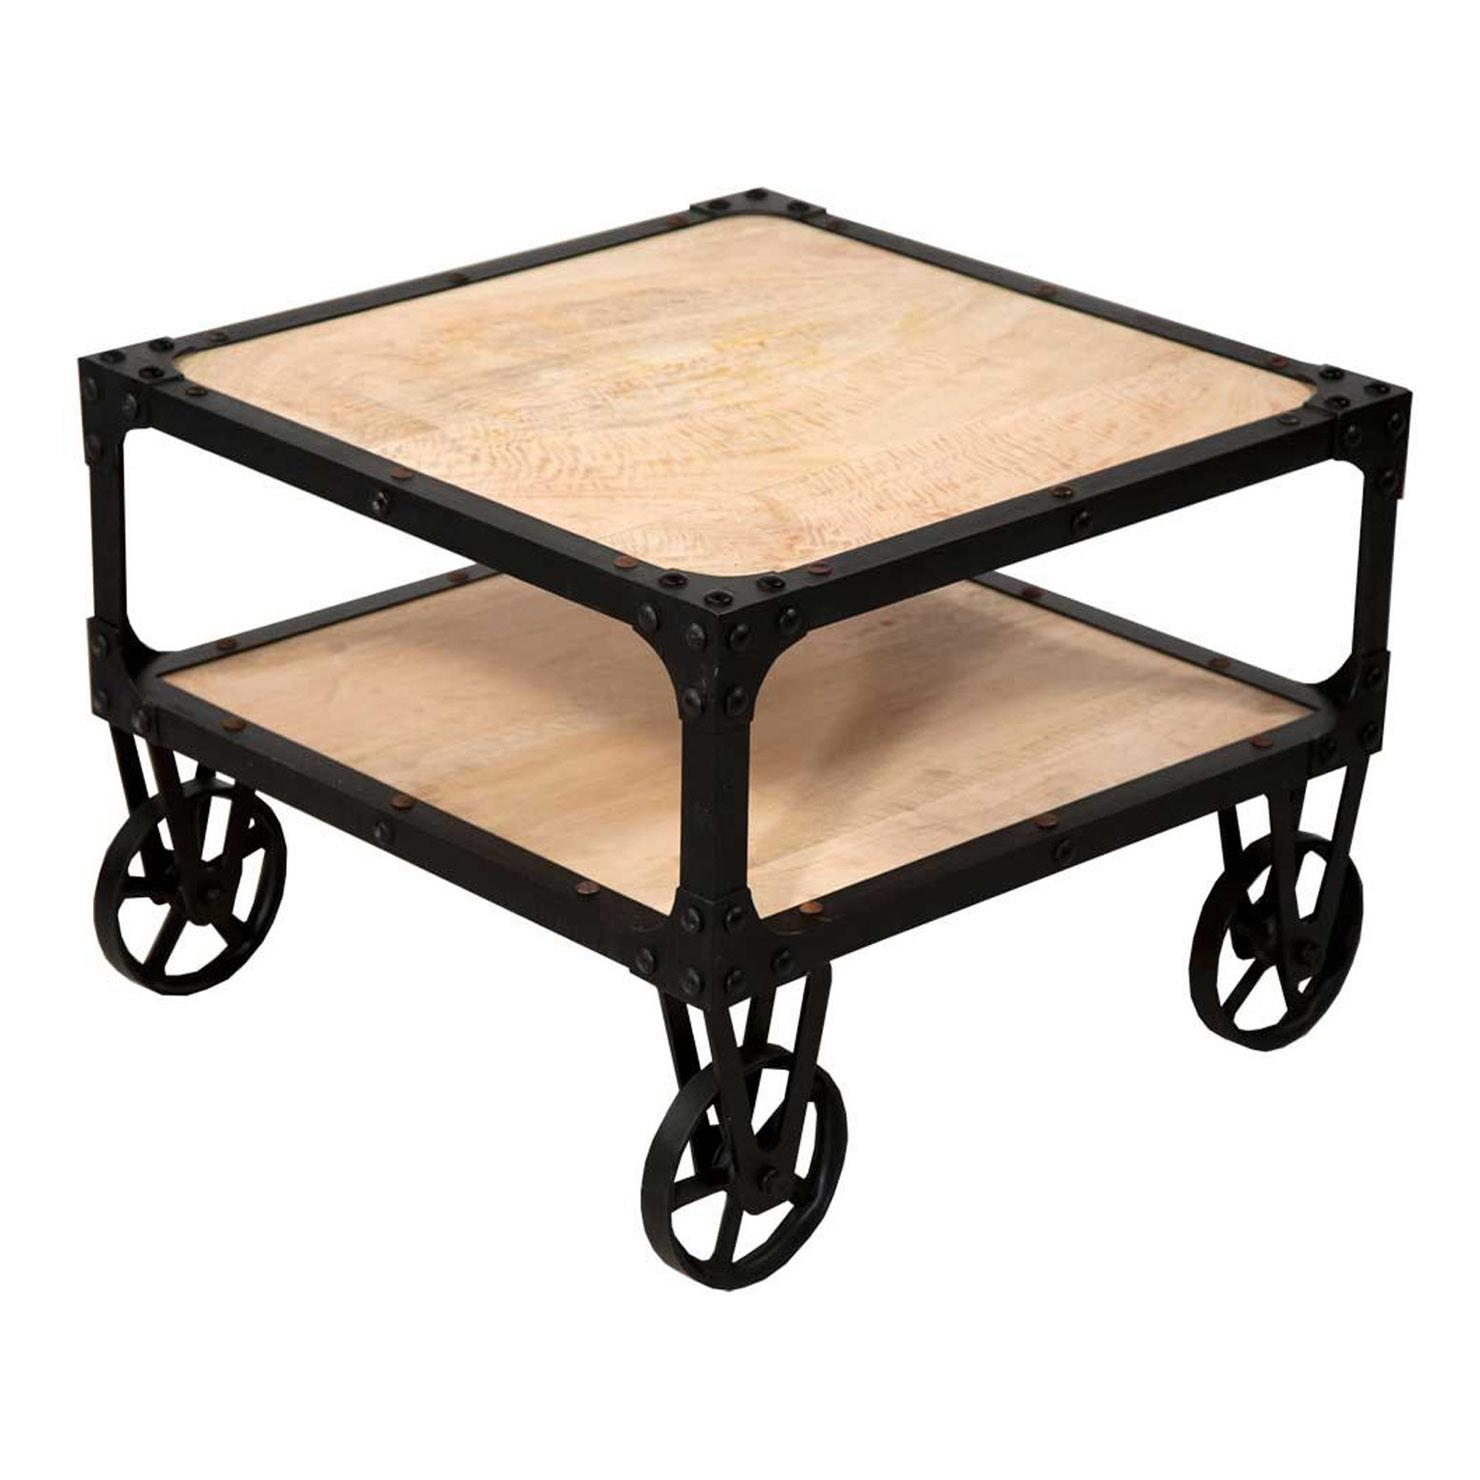 Industrial Coffee Table Wheels Natural Black Achica